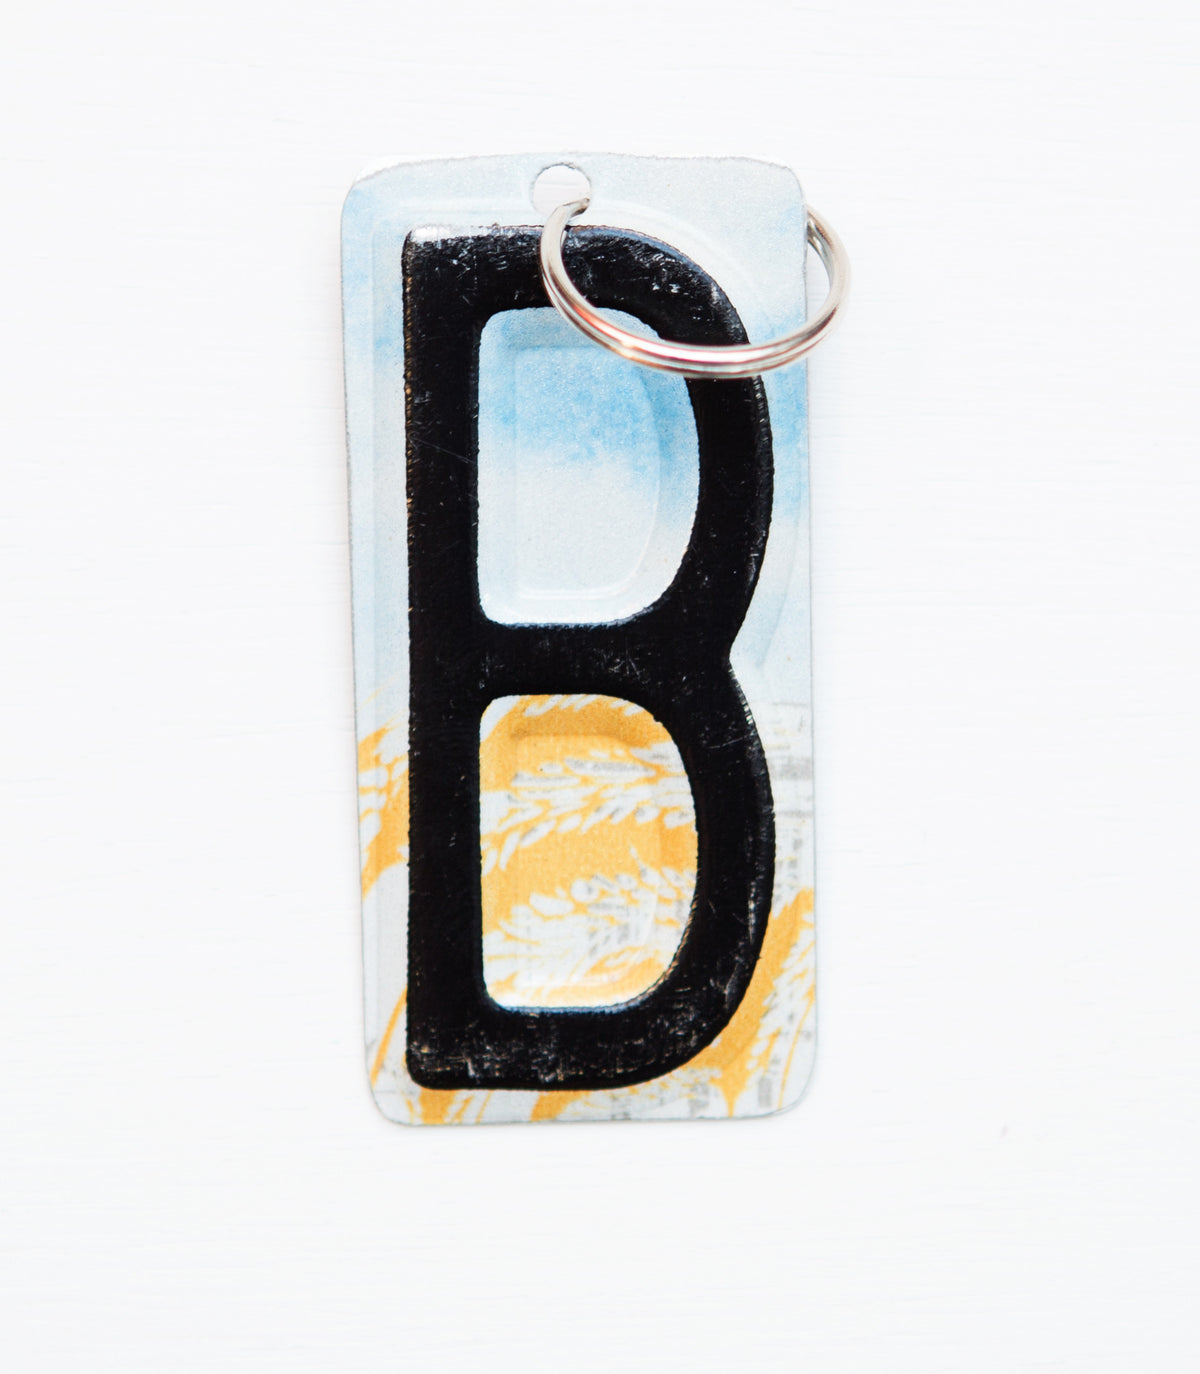 LETTER B KEY CHAIN  Recycled License Plate Key Chain - Unique Pl8z